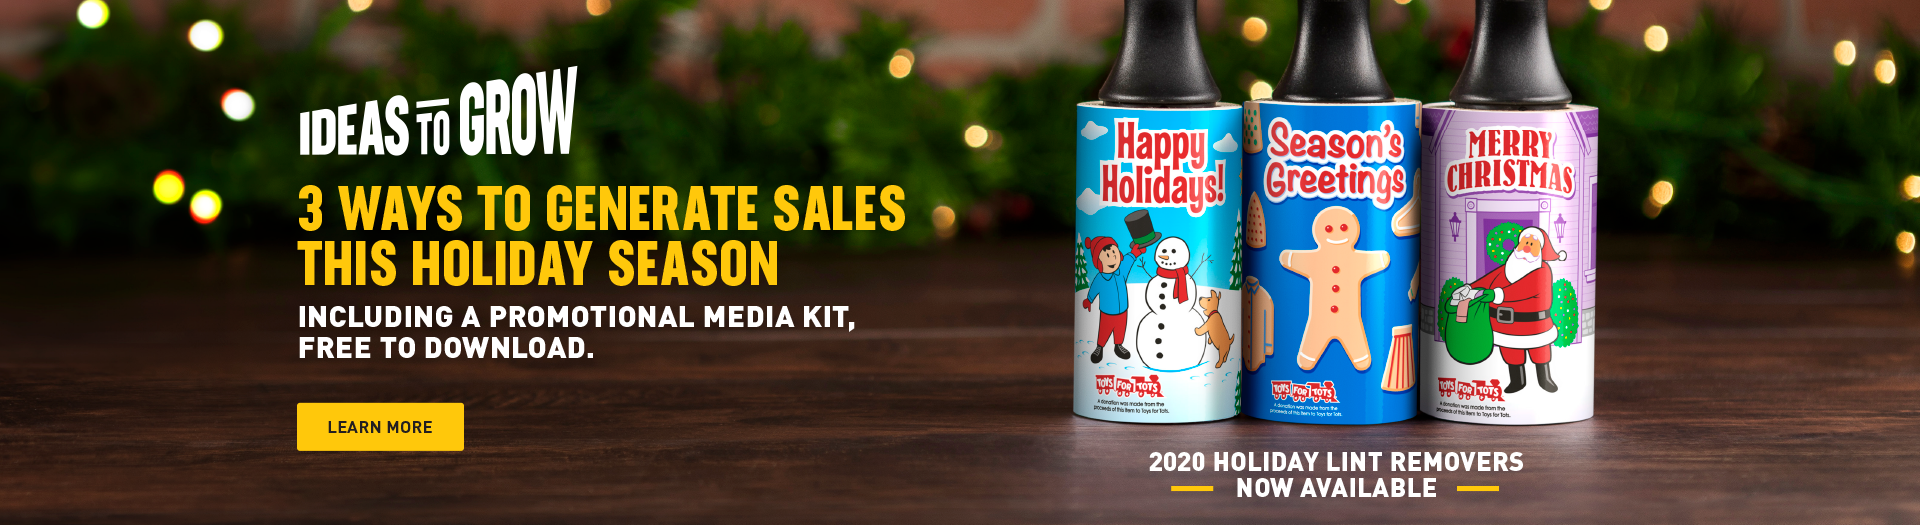 2020 Cleaner's Supply Holiday Lint Removers and Media Kit